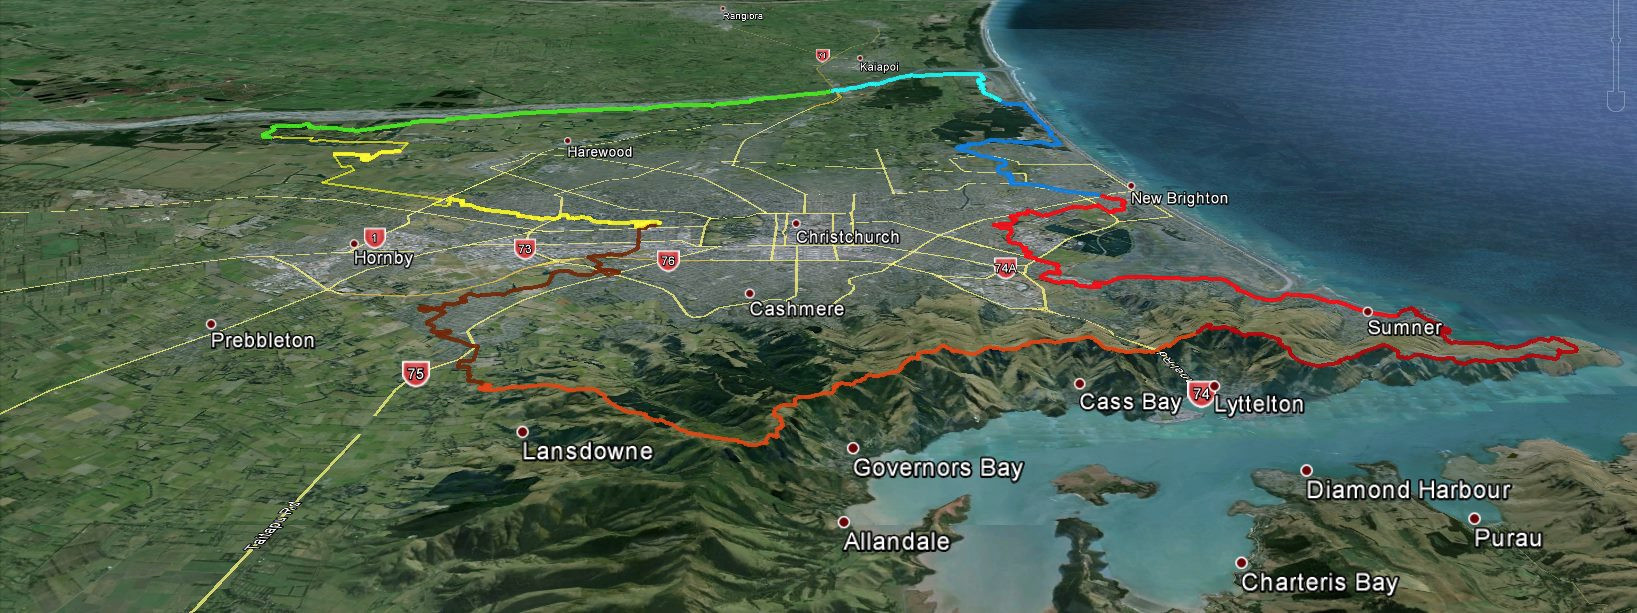 Christchurch 360 Trail flyover